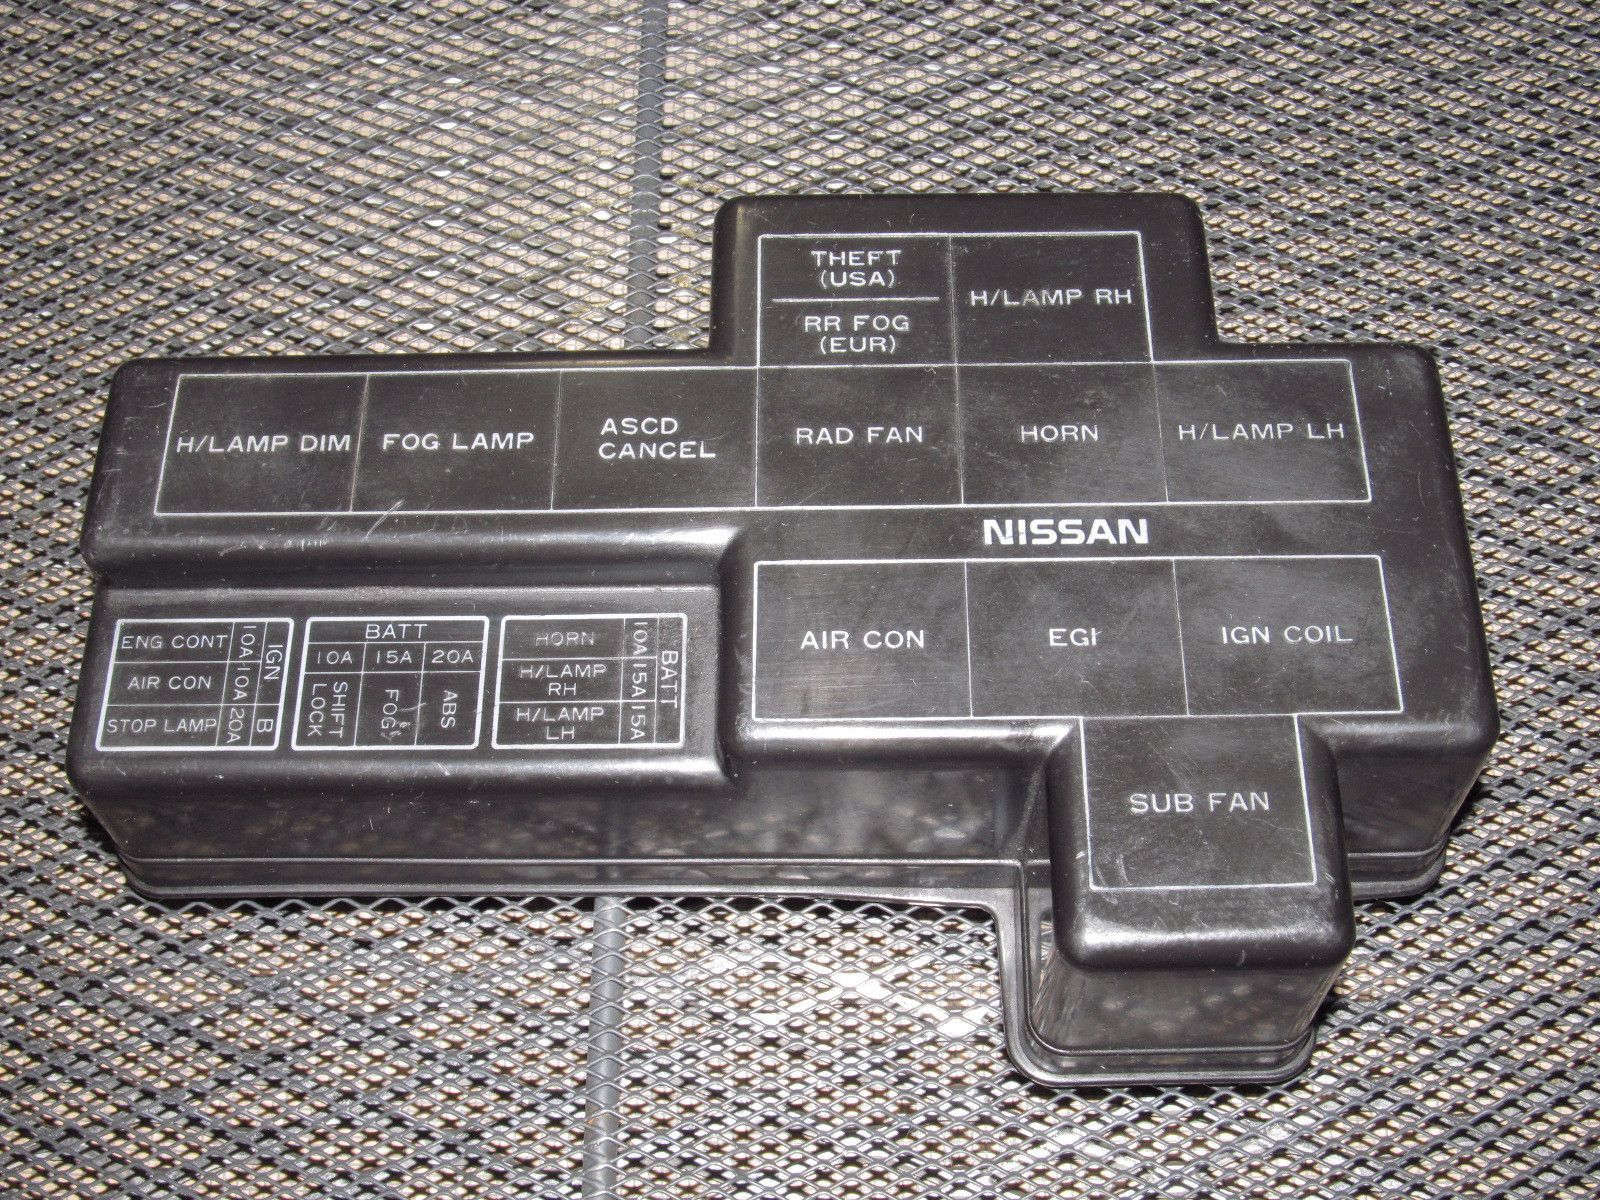 61e5bad3e8d38b9e36a270242c52ae3b 90 96 nissan 300zx oem engine fuse box cover nissan 300zx and products